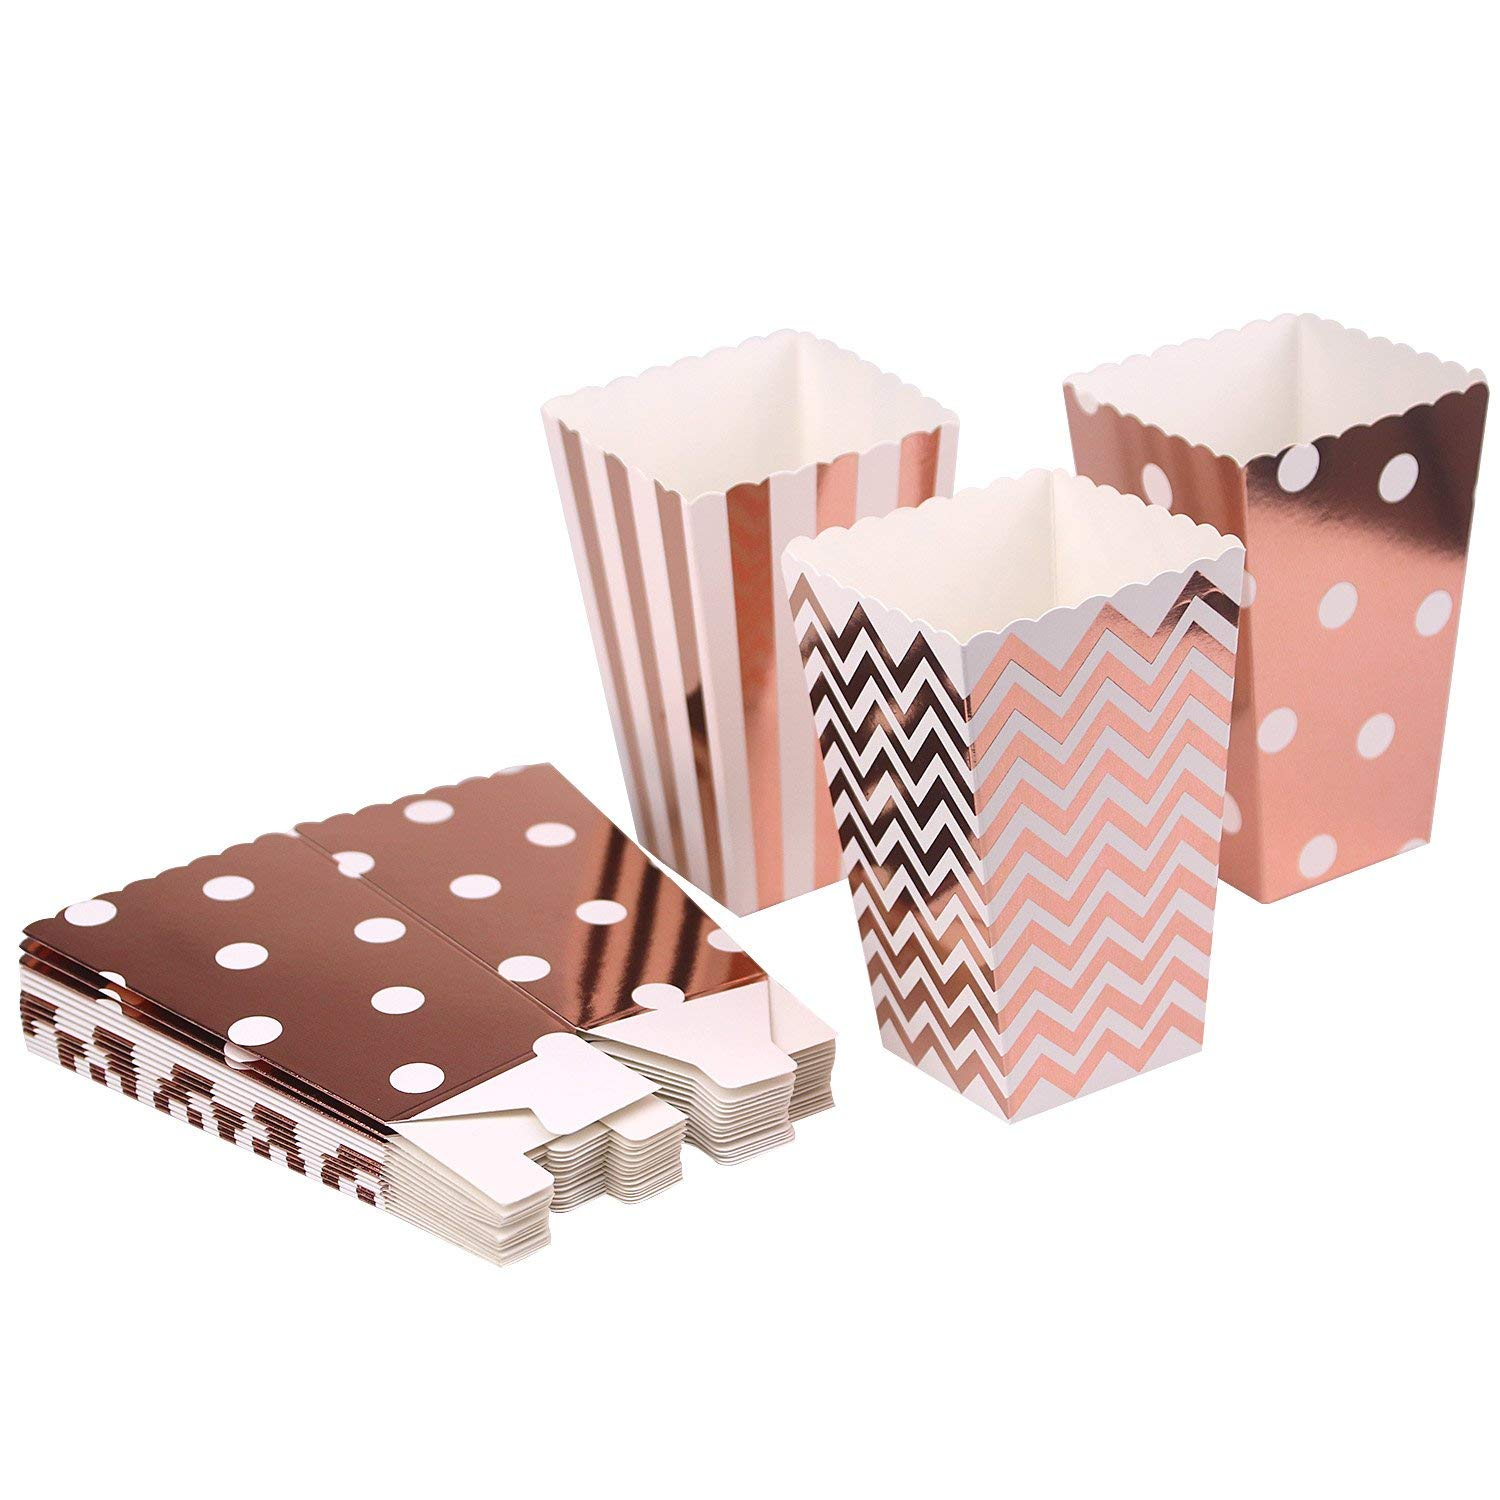 Mini Poprcorn Boxes 100 Pack Rose Gold Paper Popcorn Snack Containers Treat Box for Wedding Party Bridal Shower Birthday Movies by BALANSOHO (Image #5)